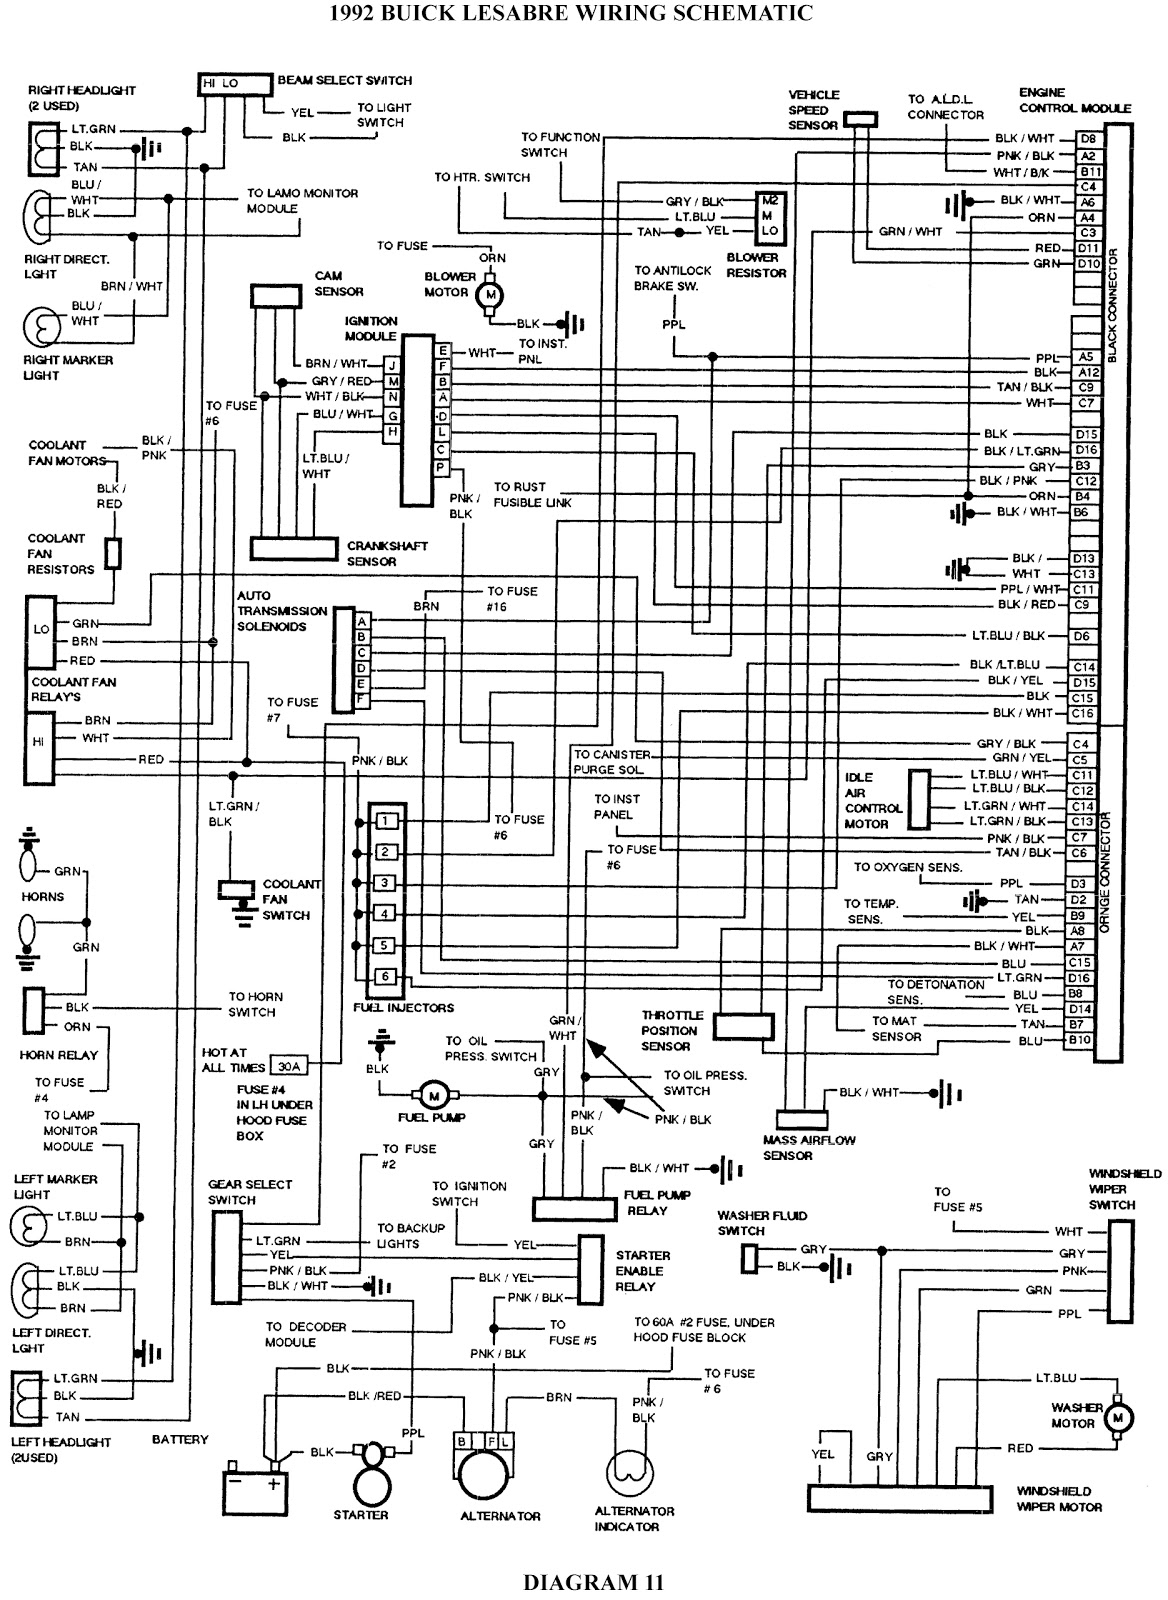 medium resolution of buick wiring diagrams 1993 wiring diagram structure buick wiring schematics